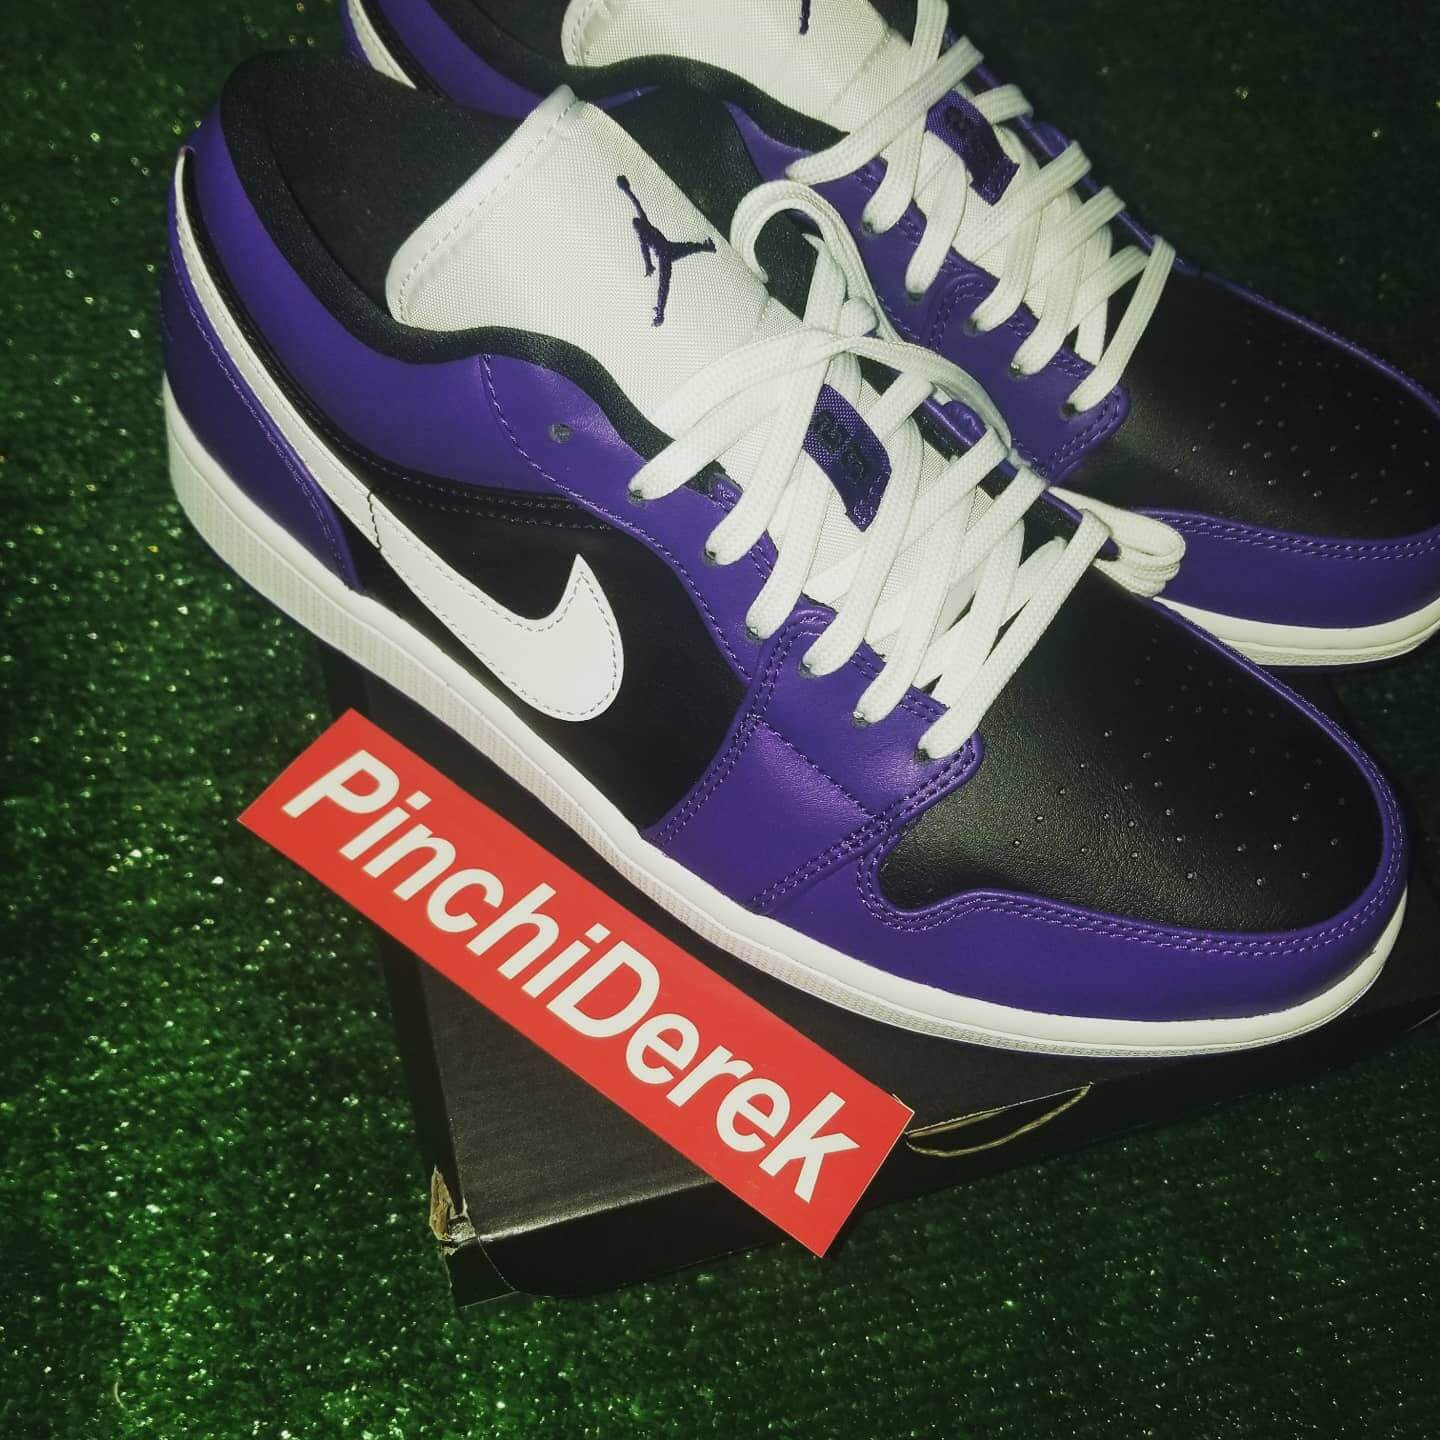 Nike Air Jordan 1 Low Purple Black 100% AUTHENTIC With Receipt Available Sizes 9, 9.5, 10. 10.5